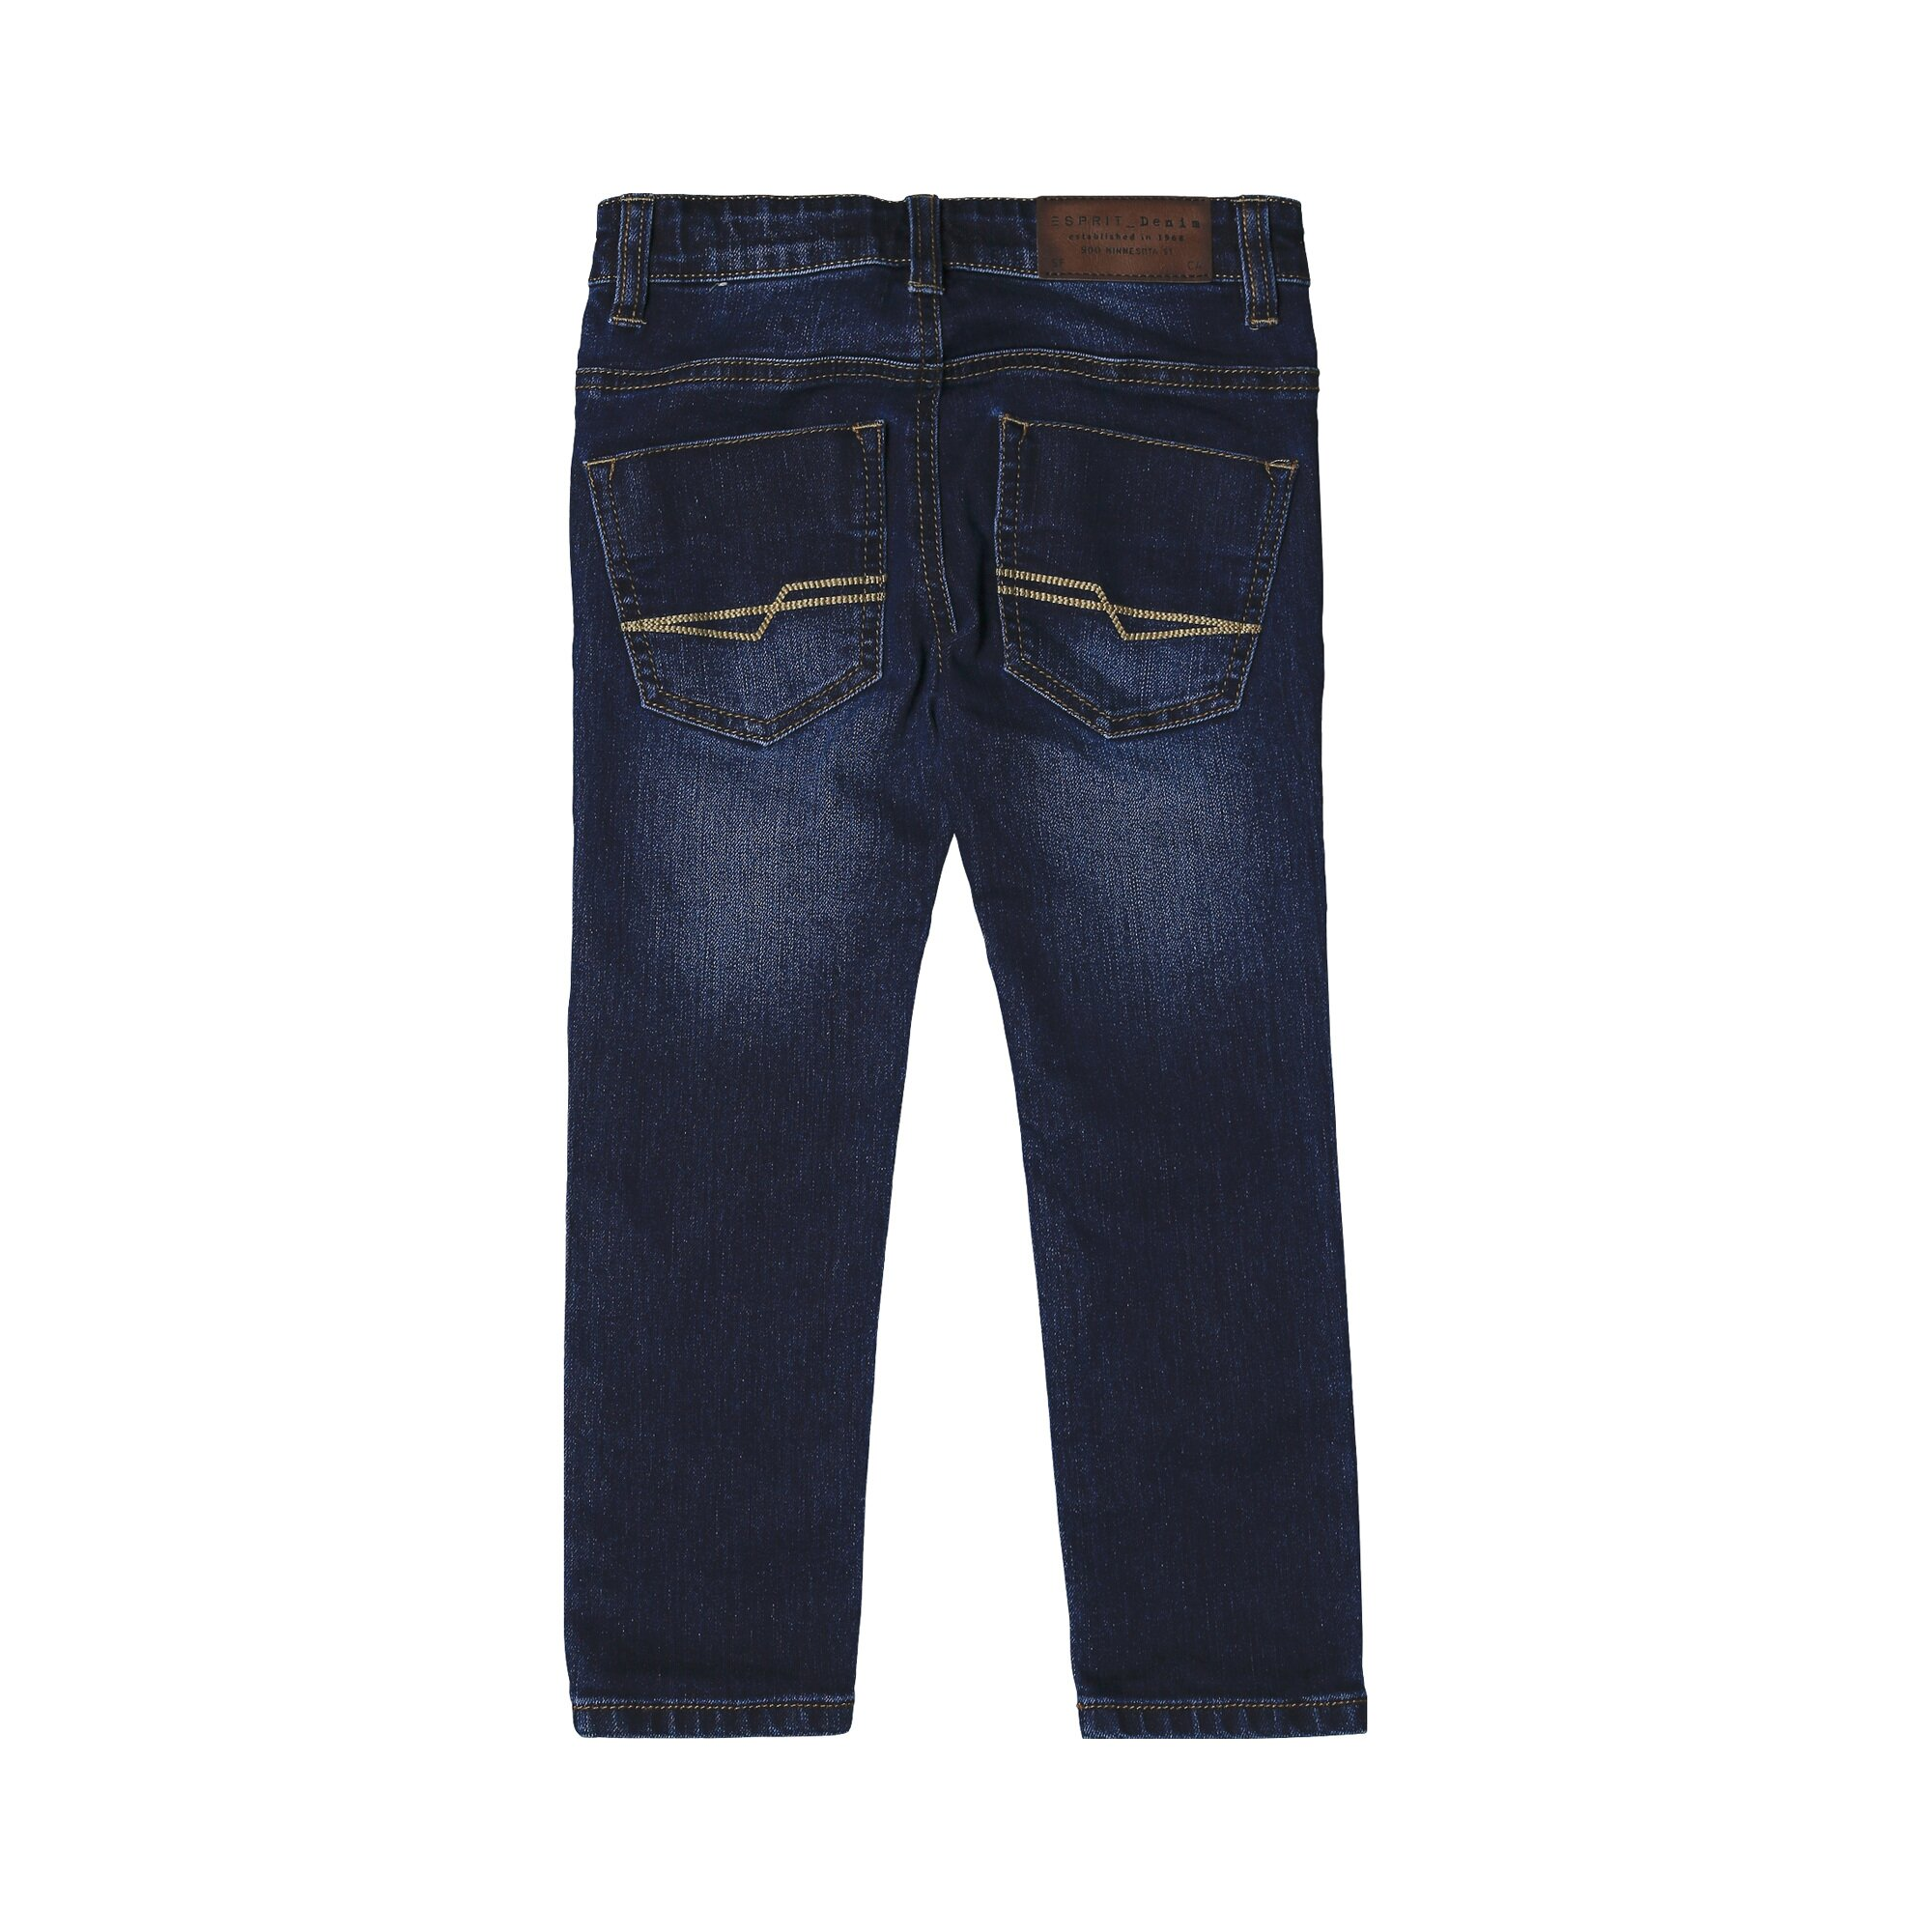 esprit-jeans-5-pocket